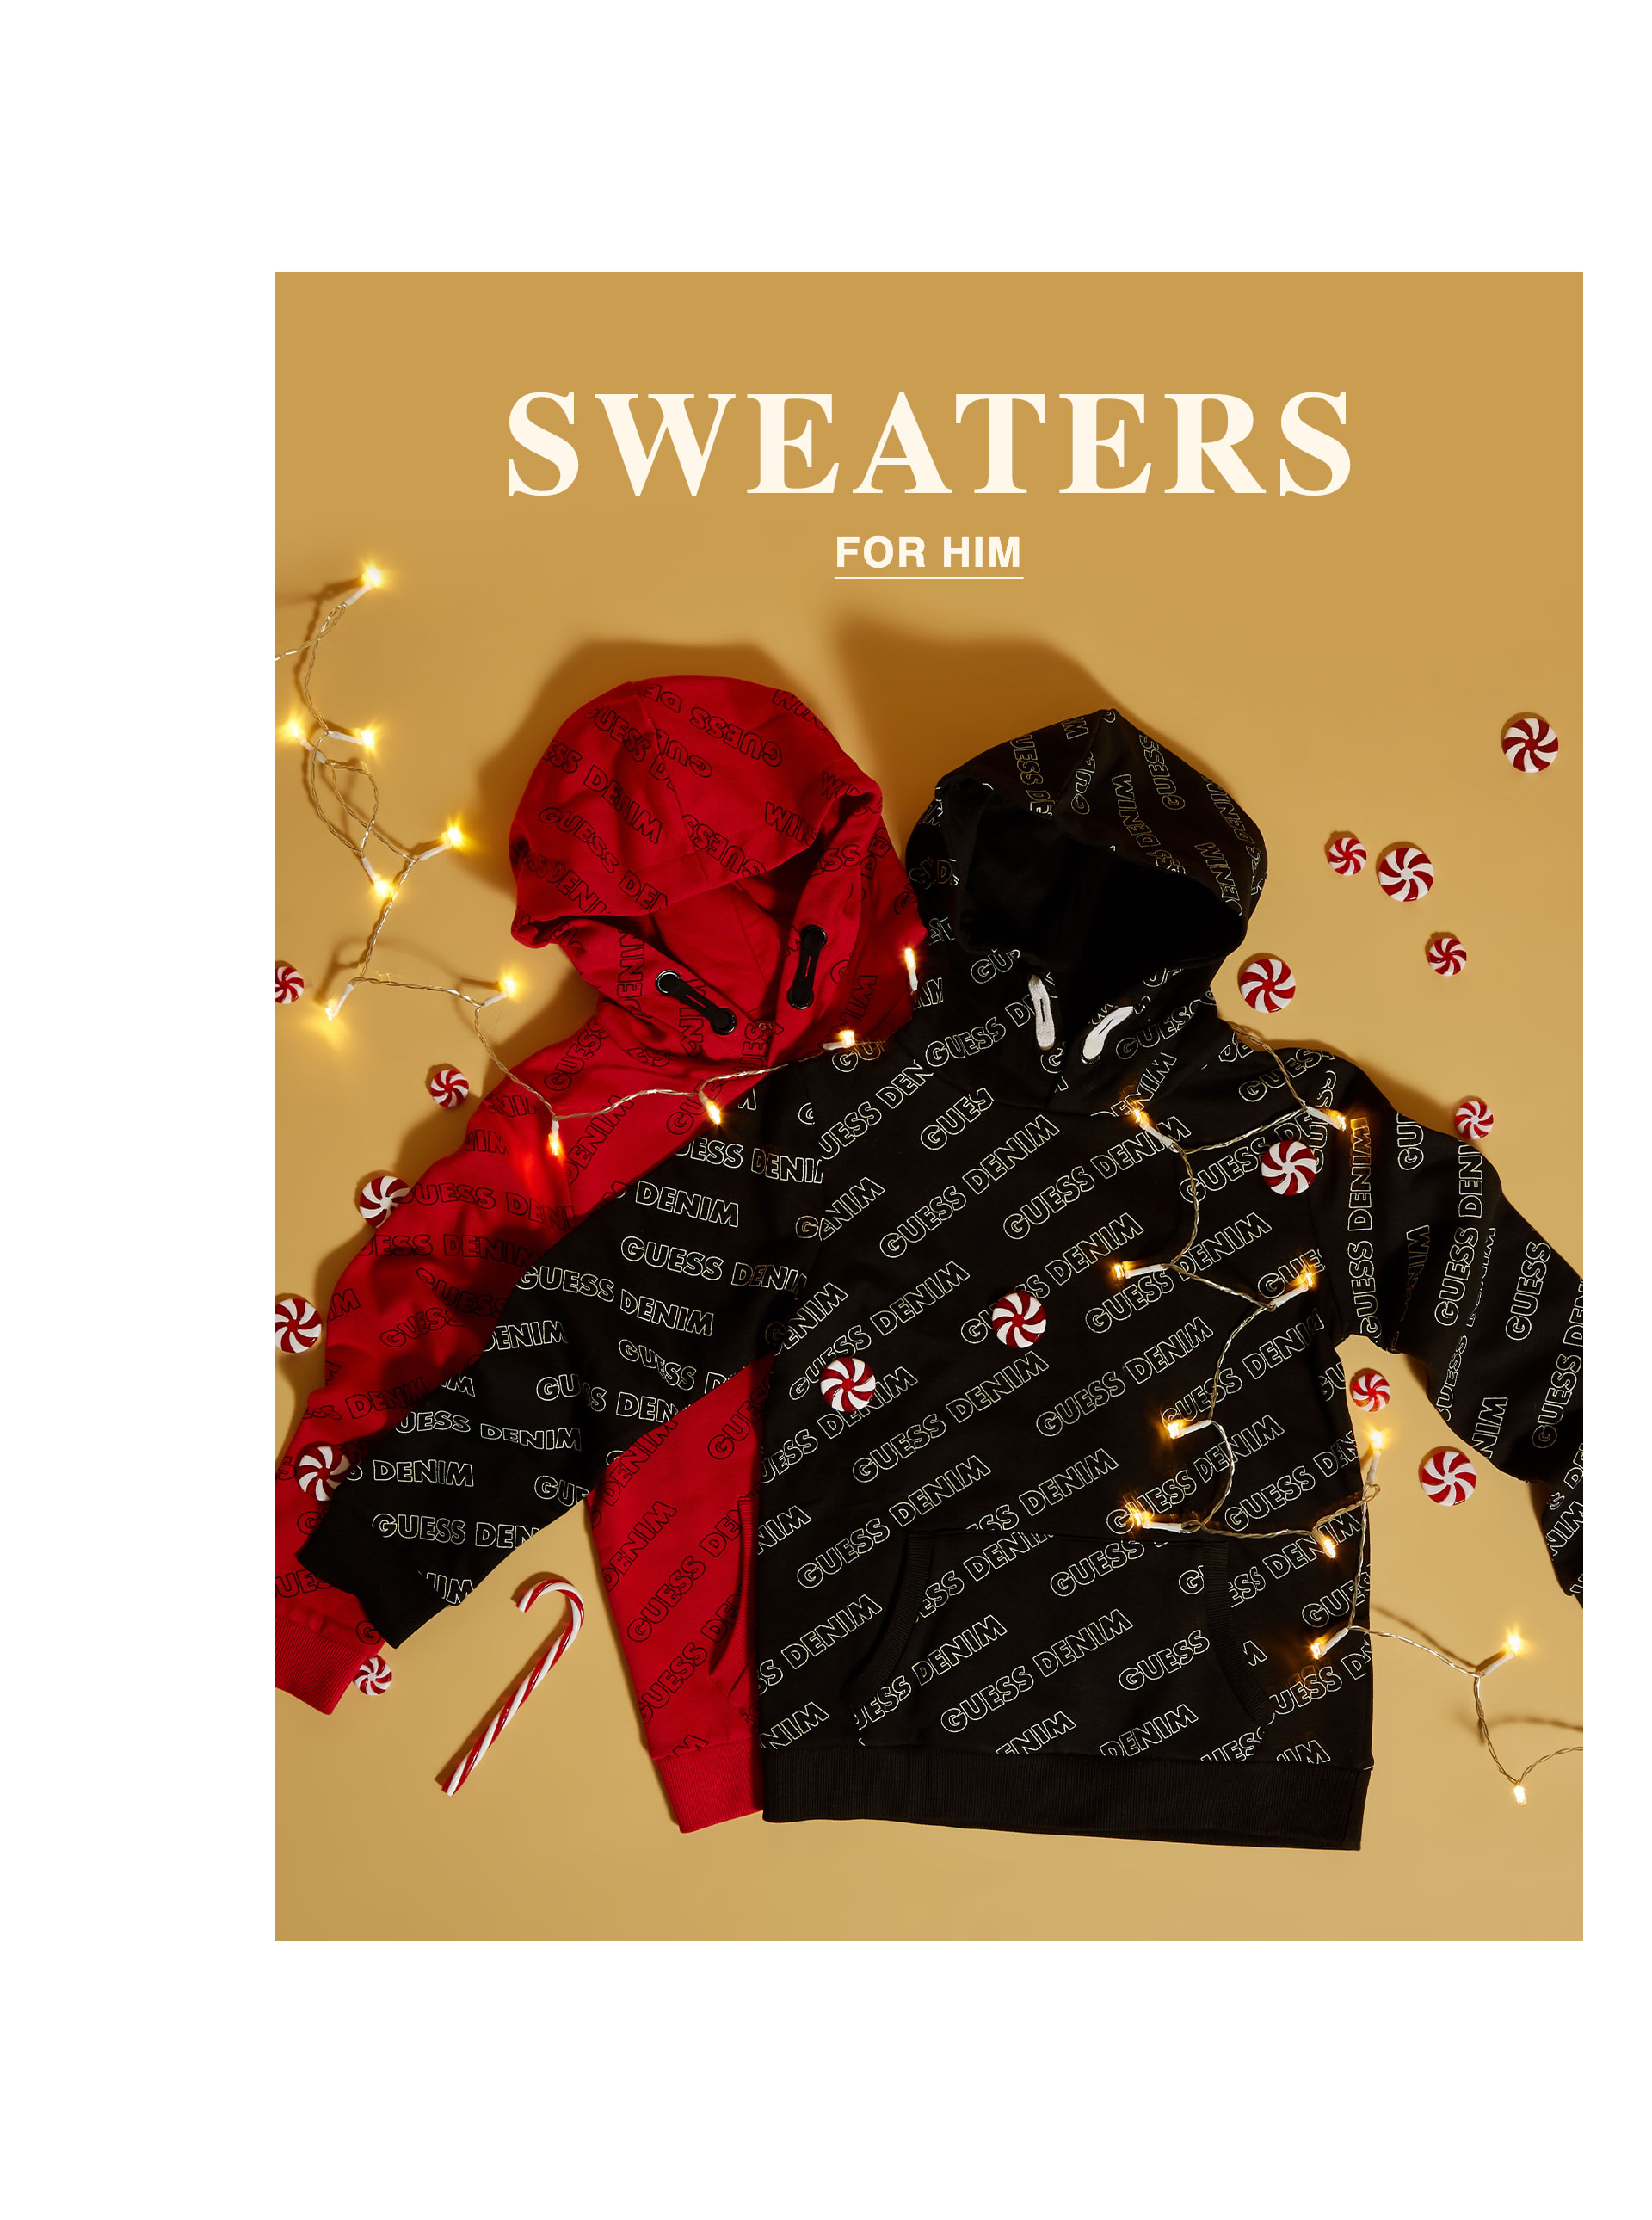 Sweaters & Hoodies for Him